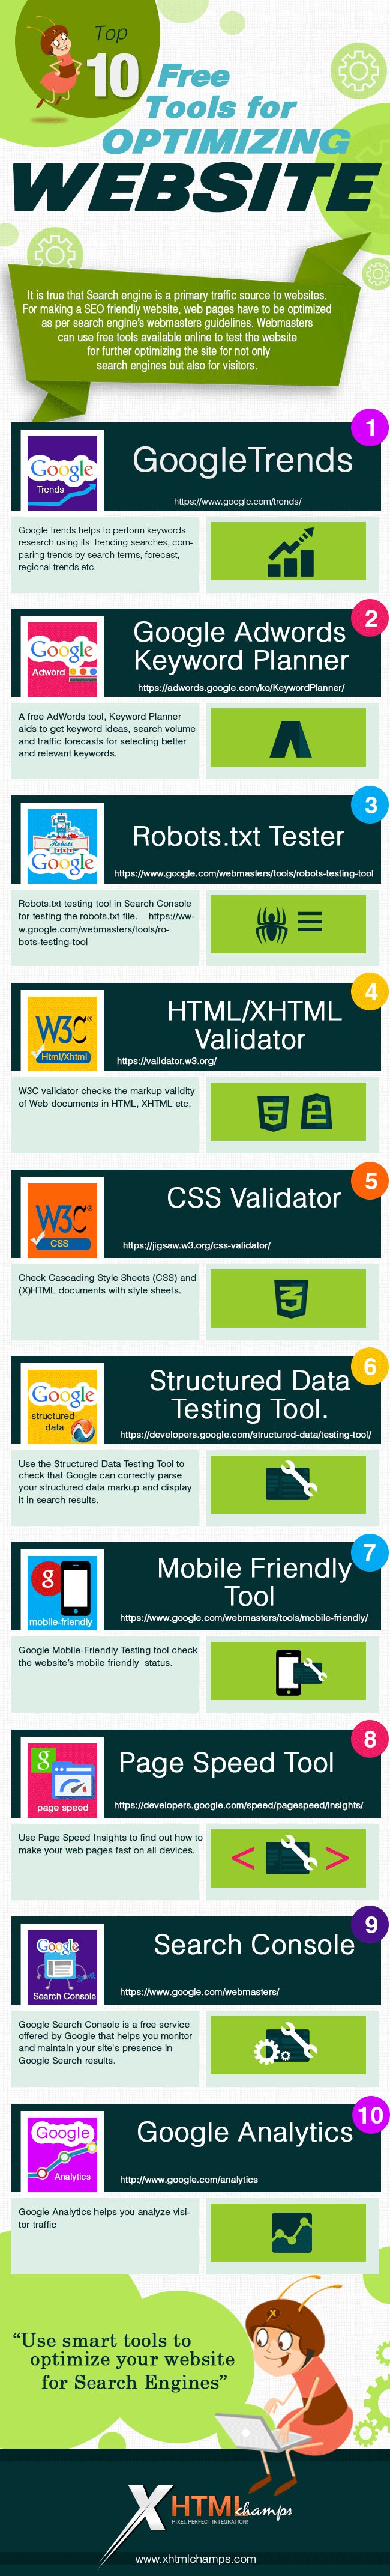 10 Free Tools for Optimising Your Website. #Infographic. Boost your website #SEO ranking,